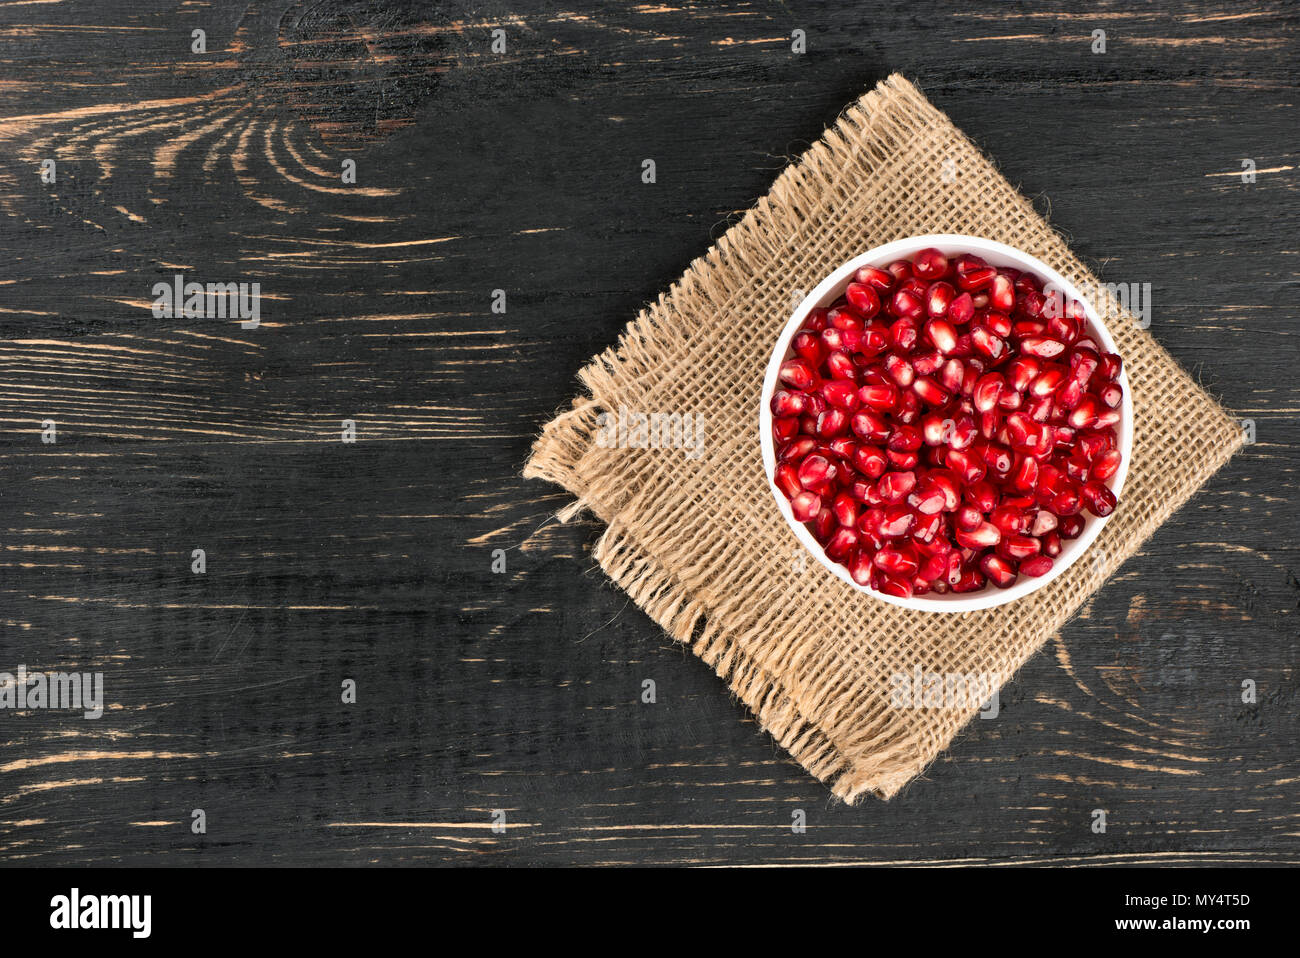 Bowl with pomegranate seeds on sackcloth and table top view - Stock Image